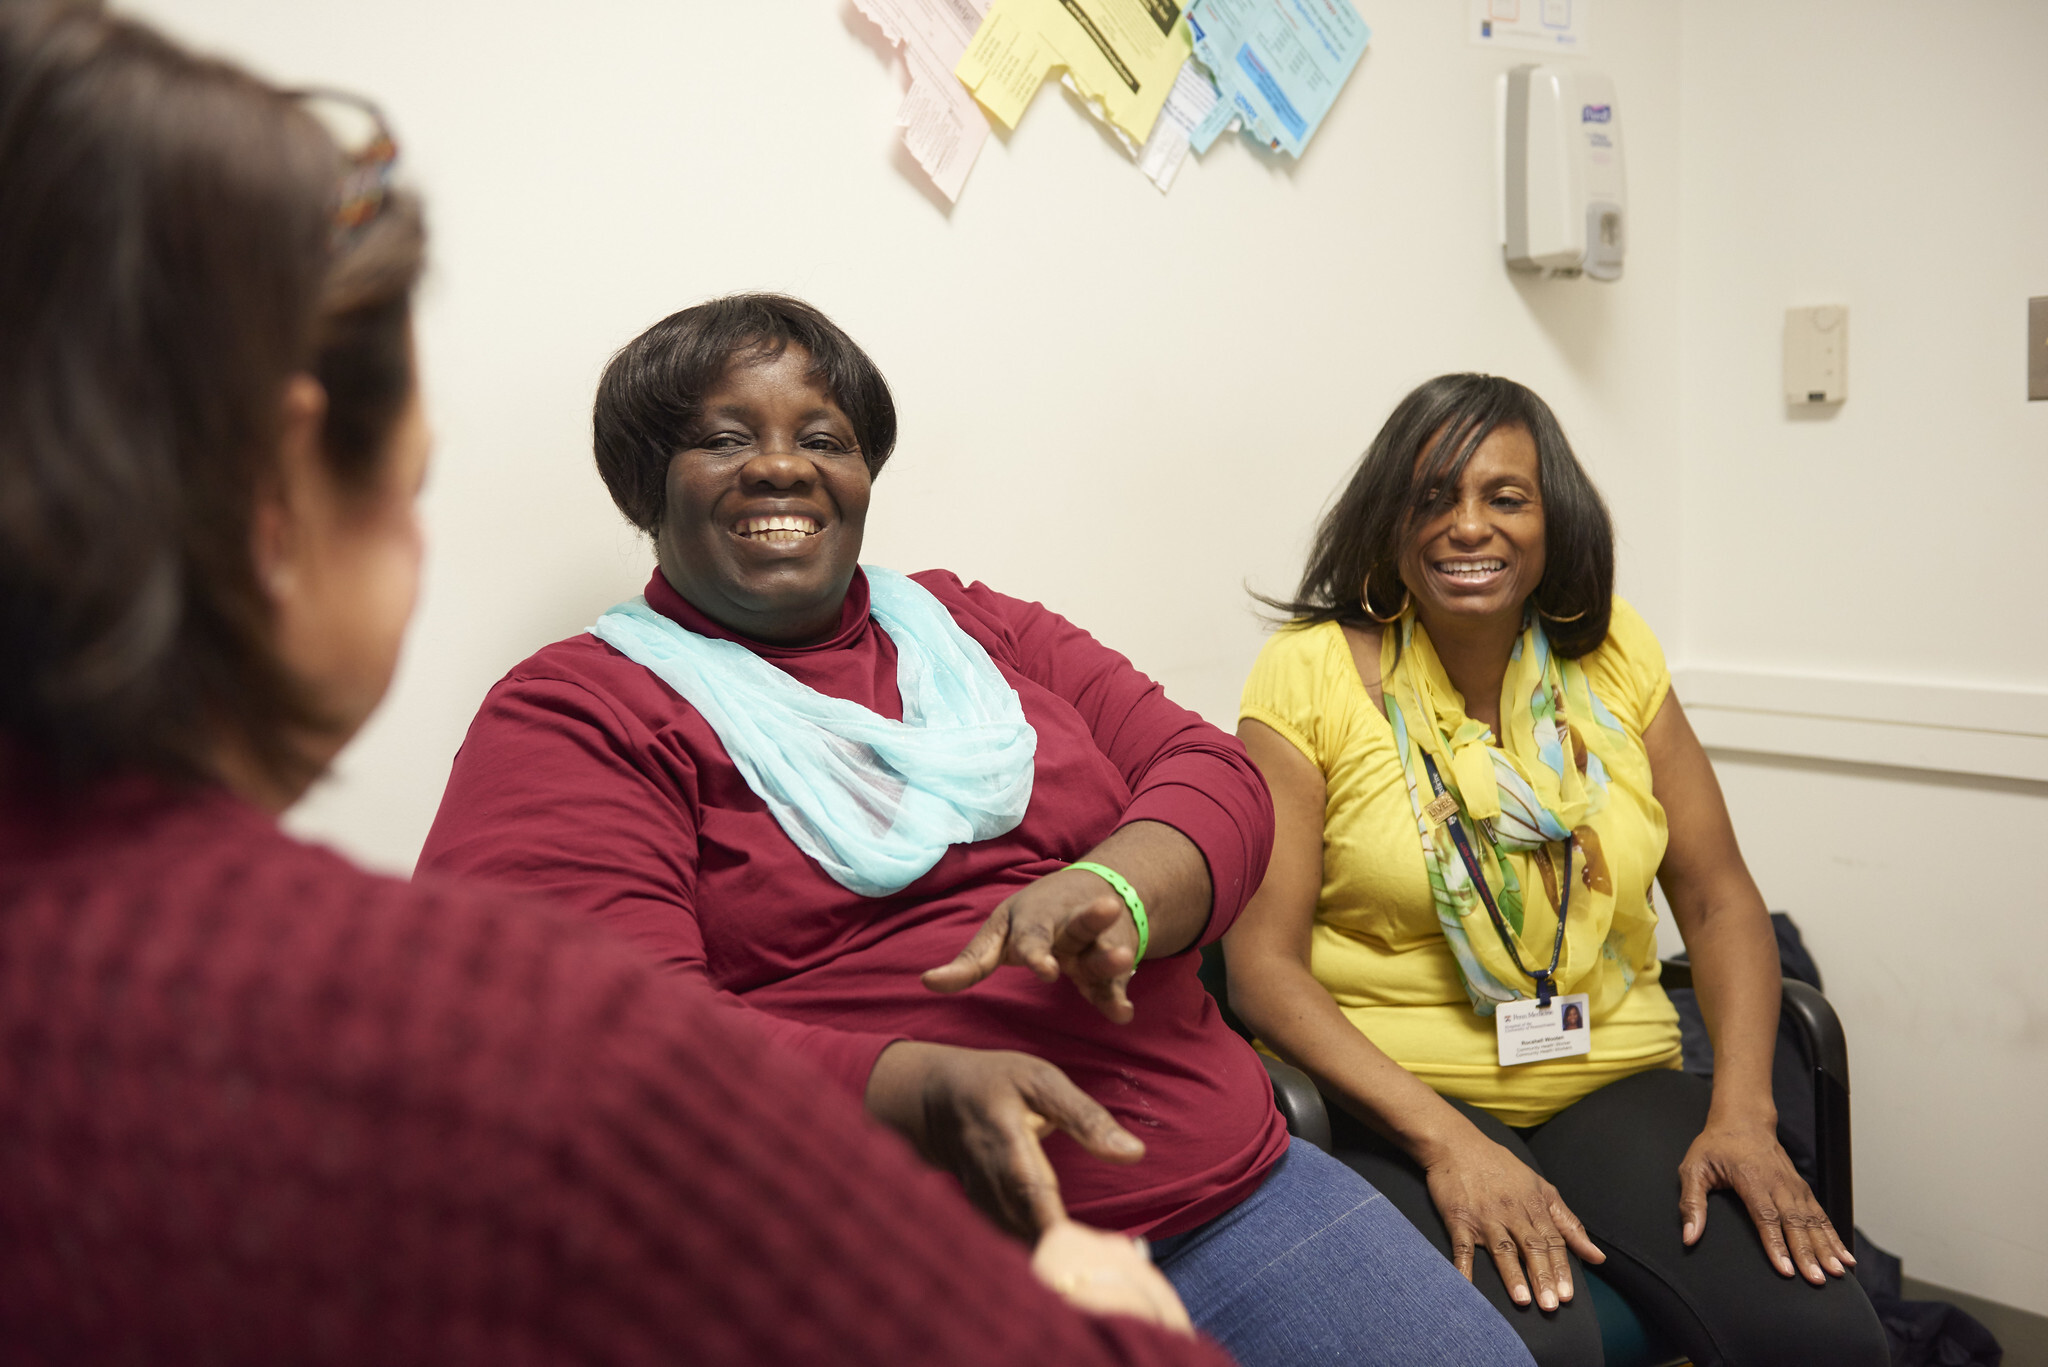 Philadelphia community health worker Rocshell Wooten (far-right) accompanies patient Grace Ikpe to their primary care appointment